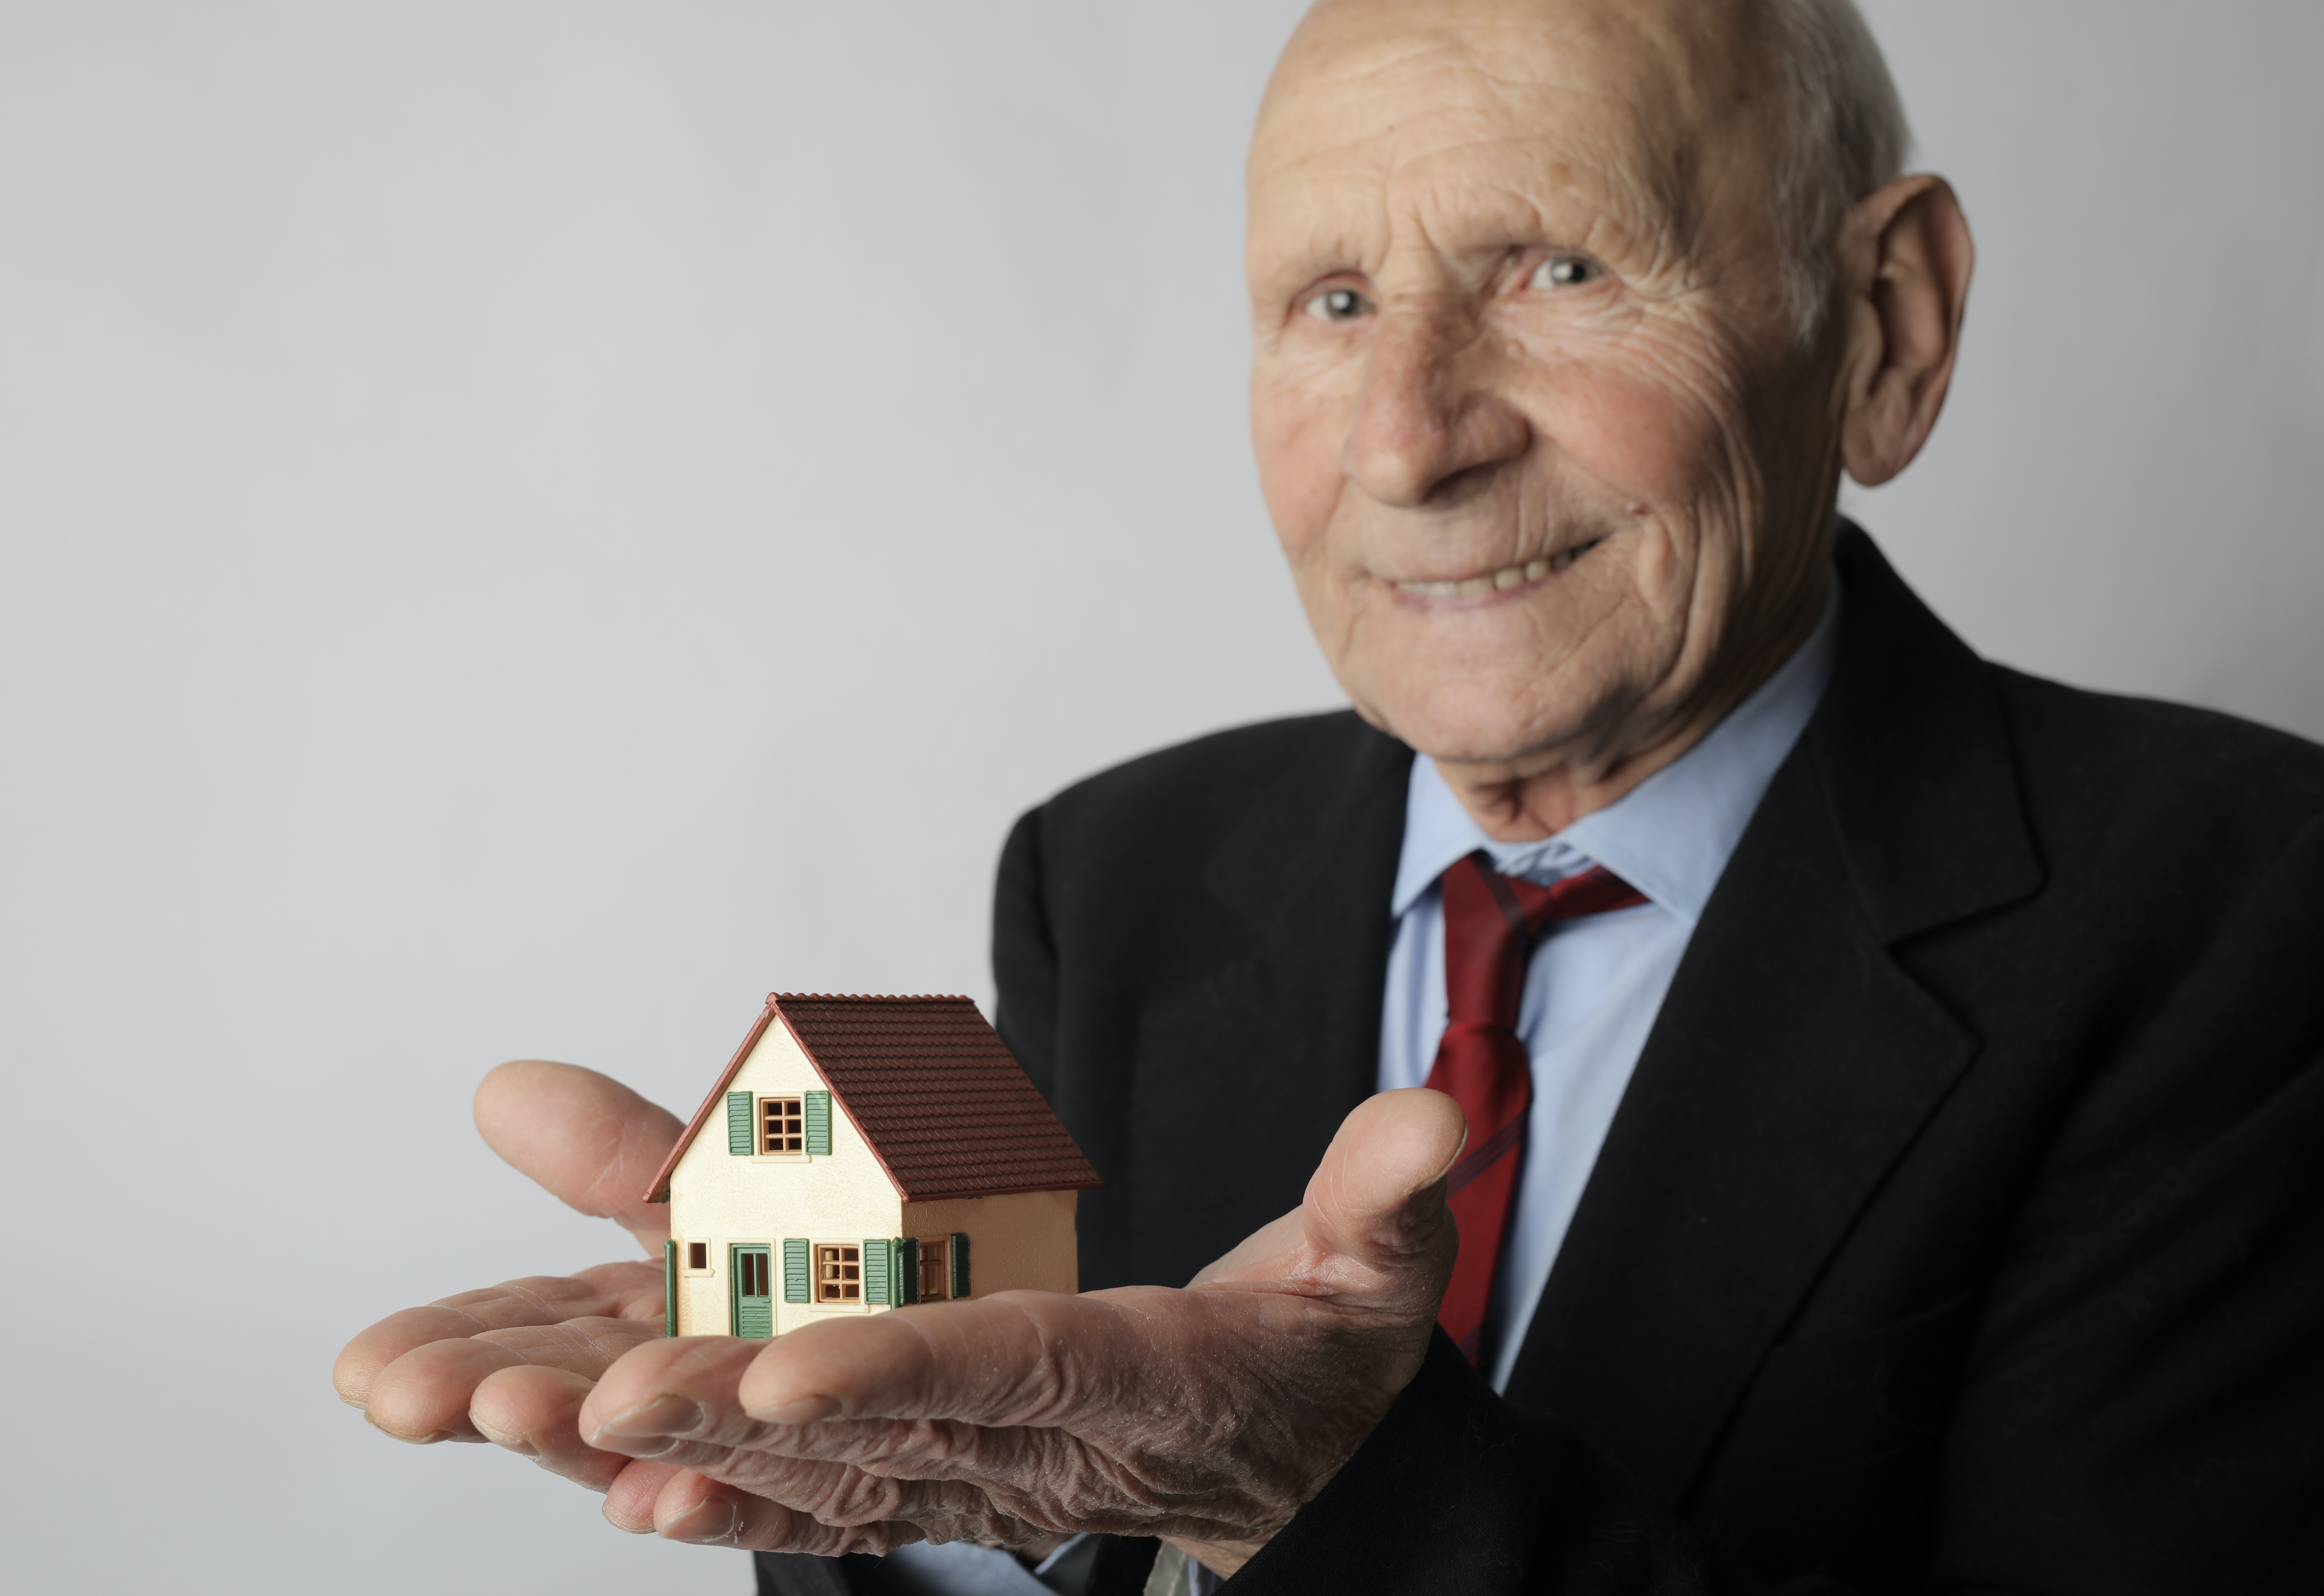 Old man holding model house